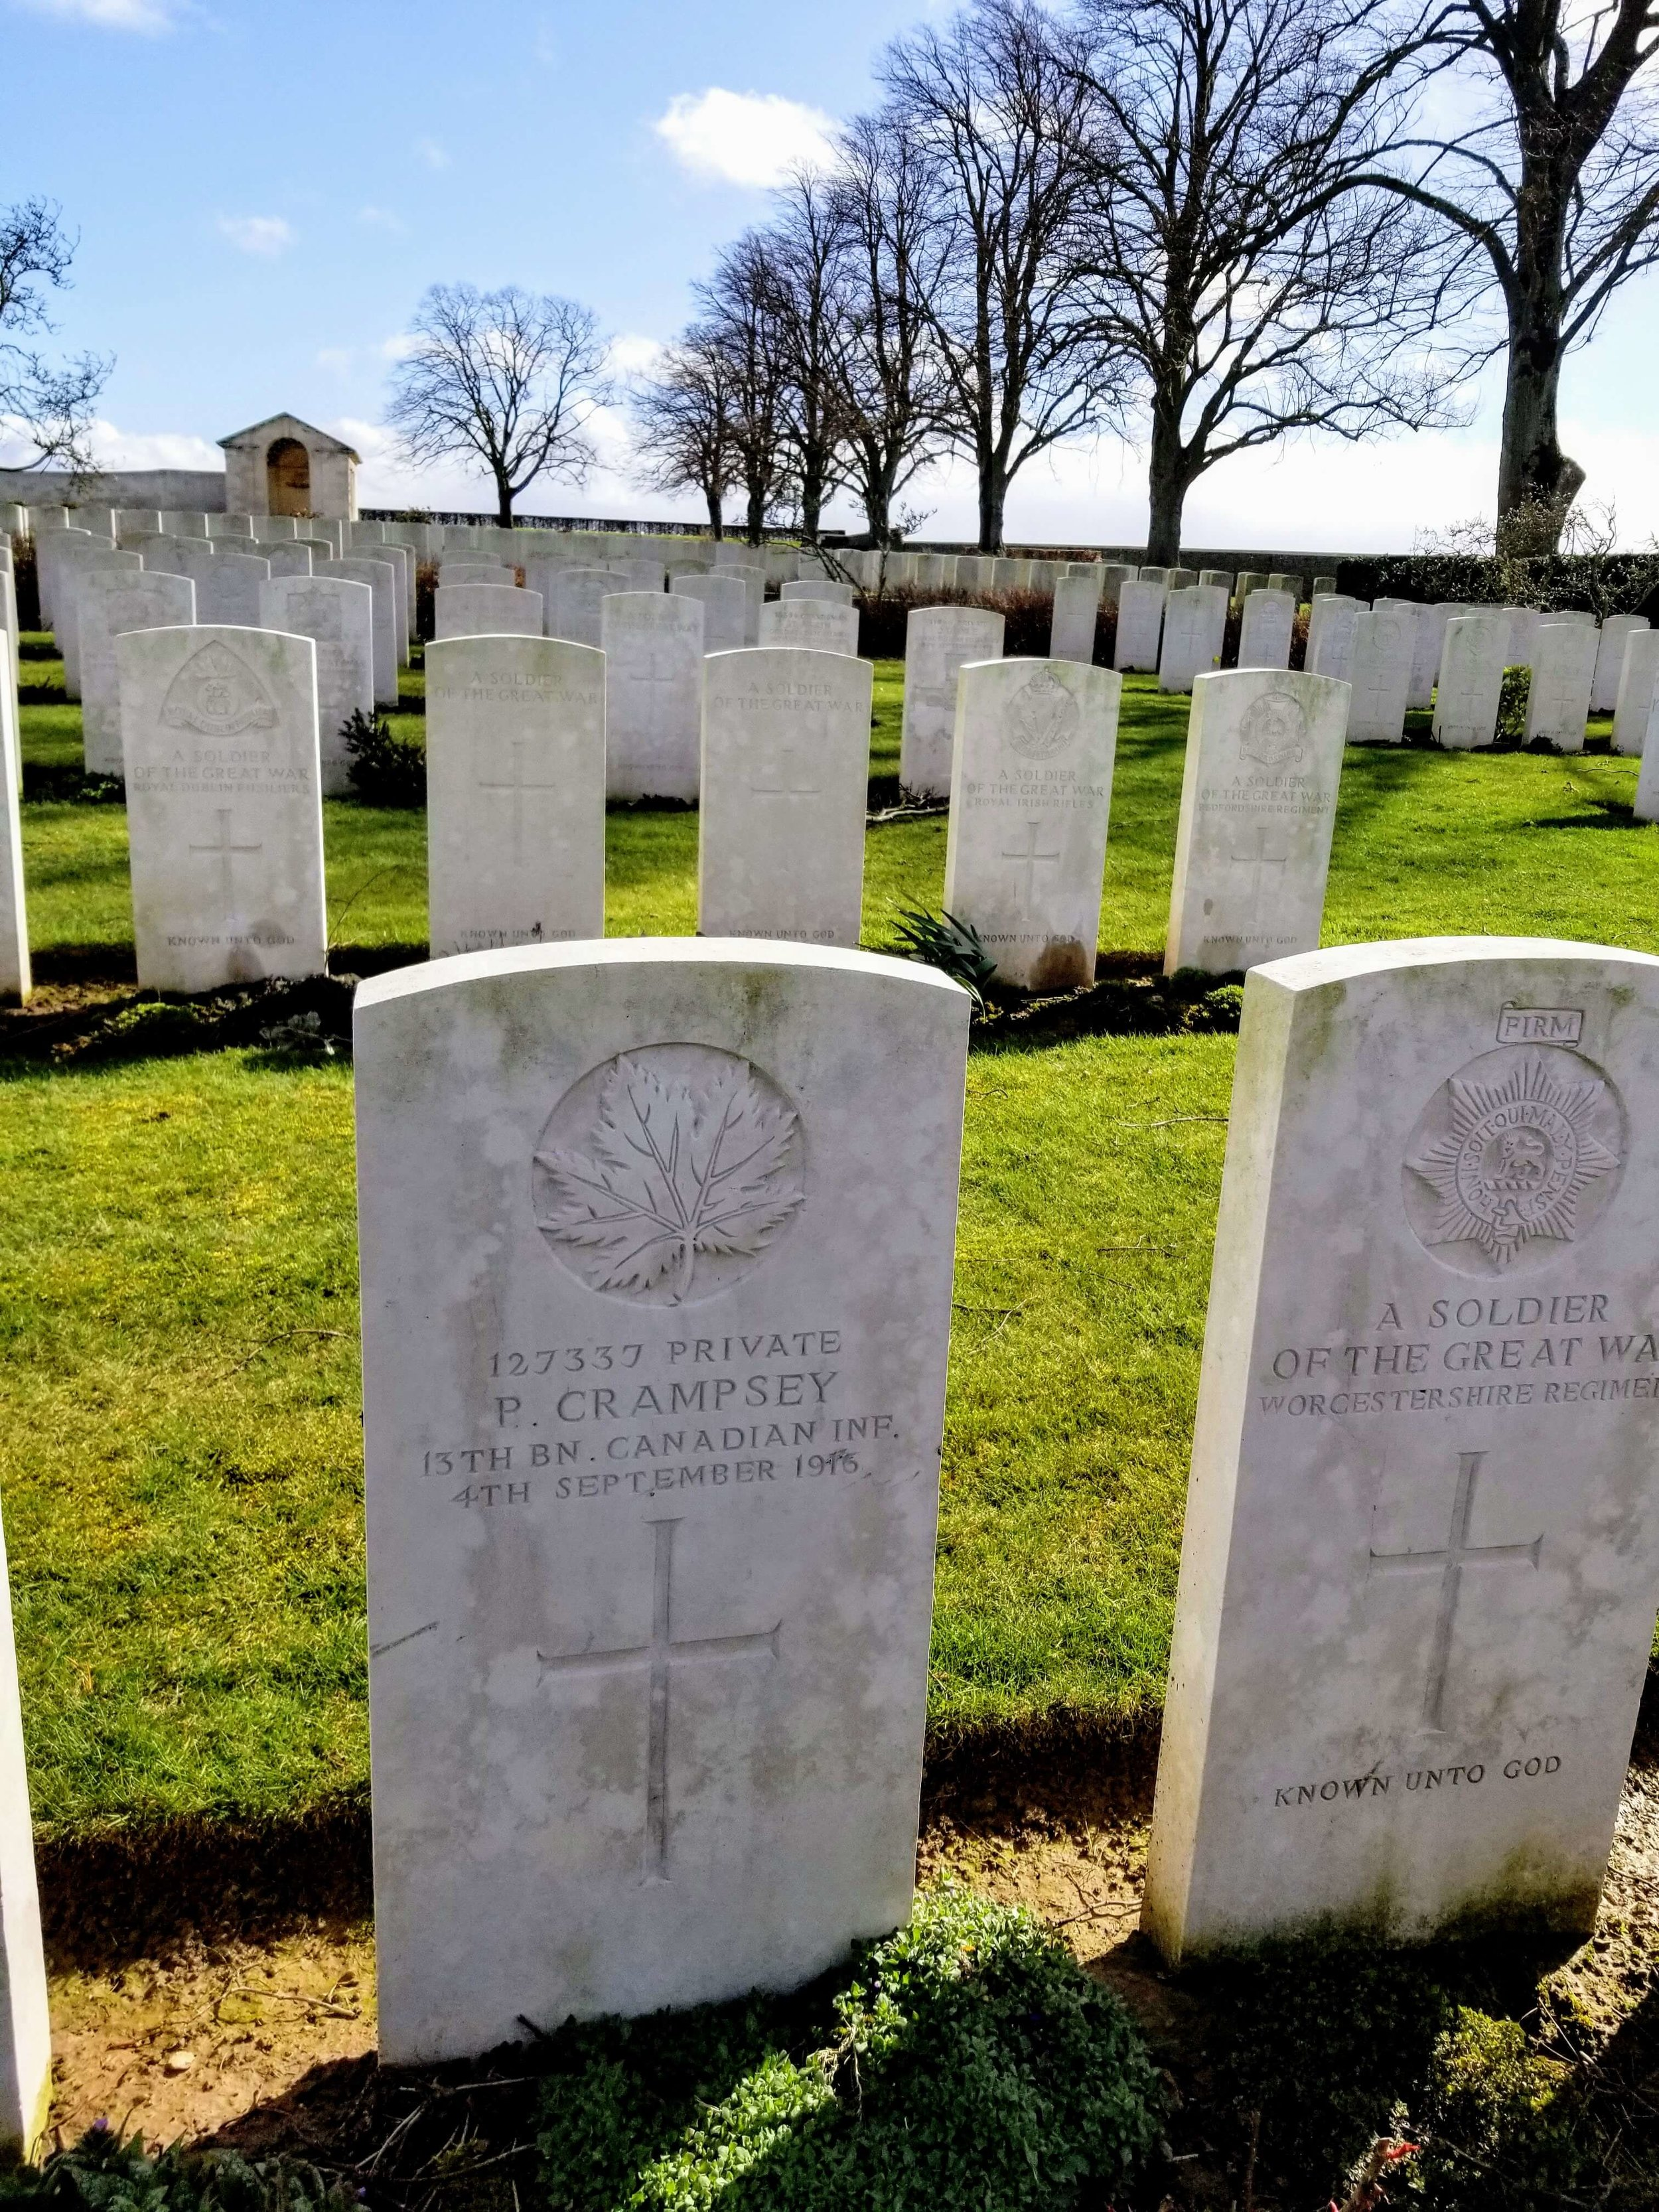 Great- great uncle's grave in northern France. He is buried in one of the many small cemeteries dotting the countryside around the Somme River.